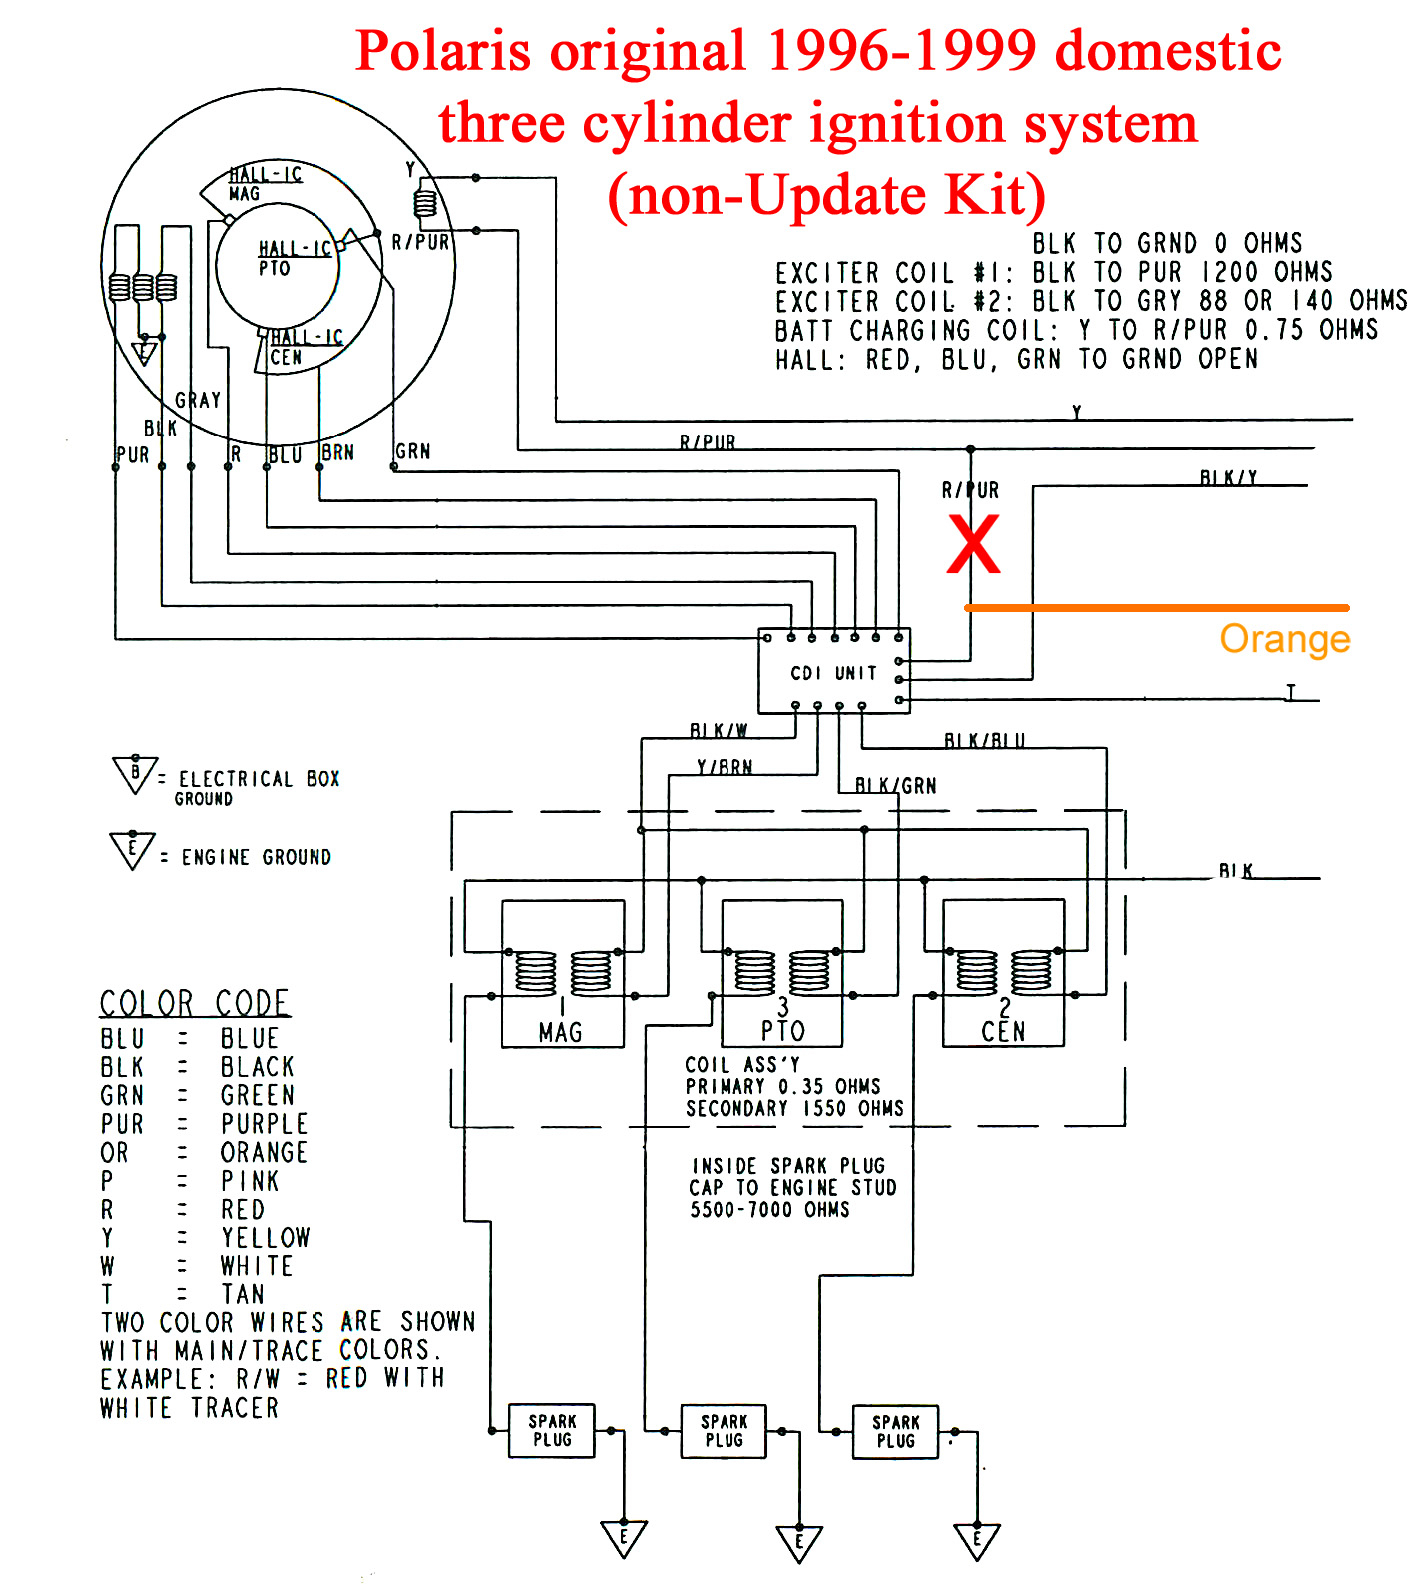 get ignition interlock wiring diagram sample. Black Bedroom Furniture Sets. Home Design Ideas